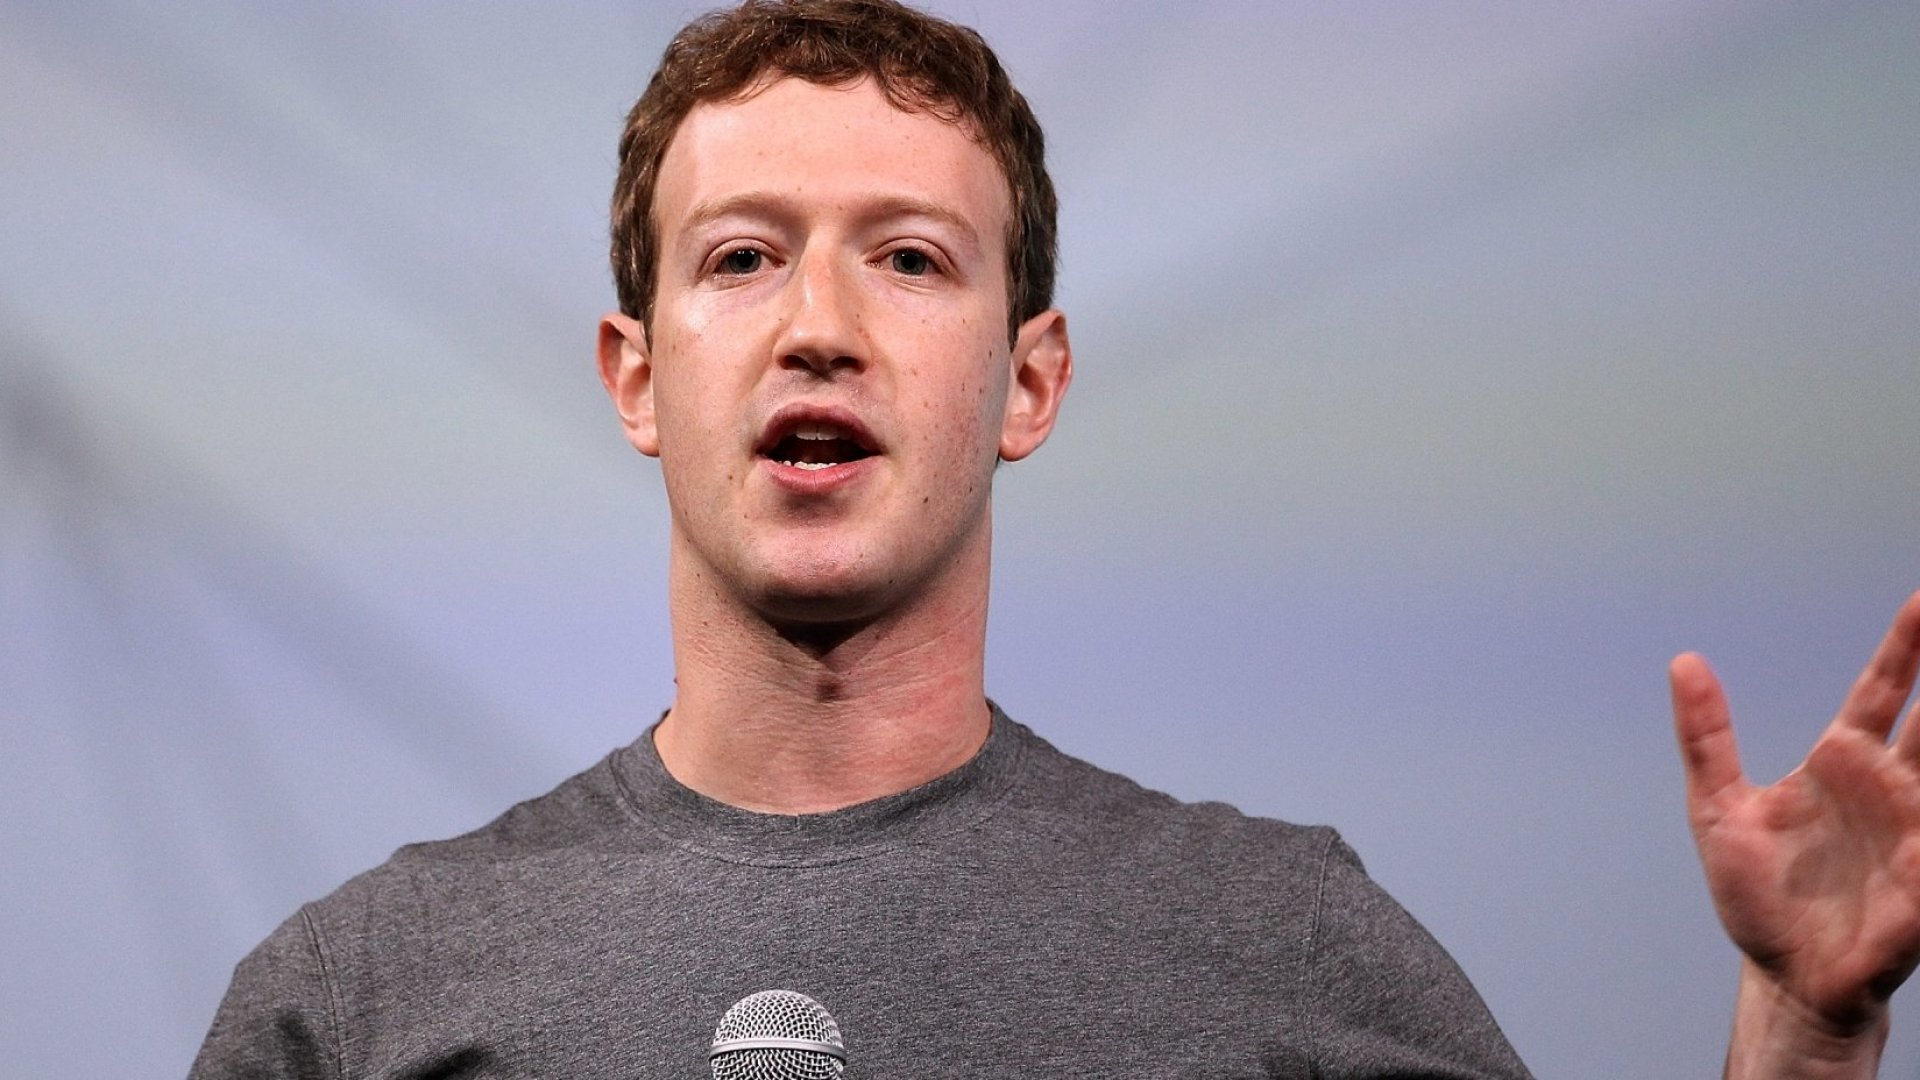 Mark Zuckerberg Just Laid Out a Sweeping Manifesto for the Future of Facebook